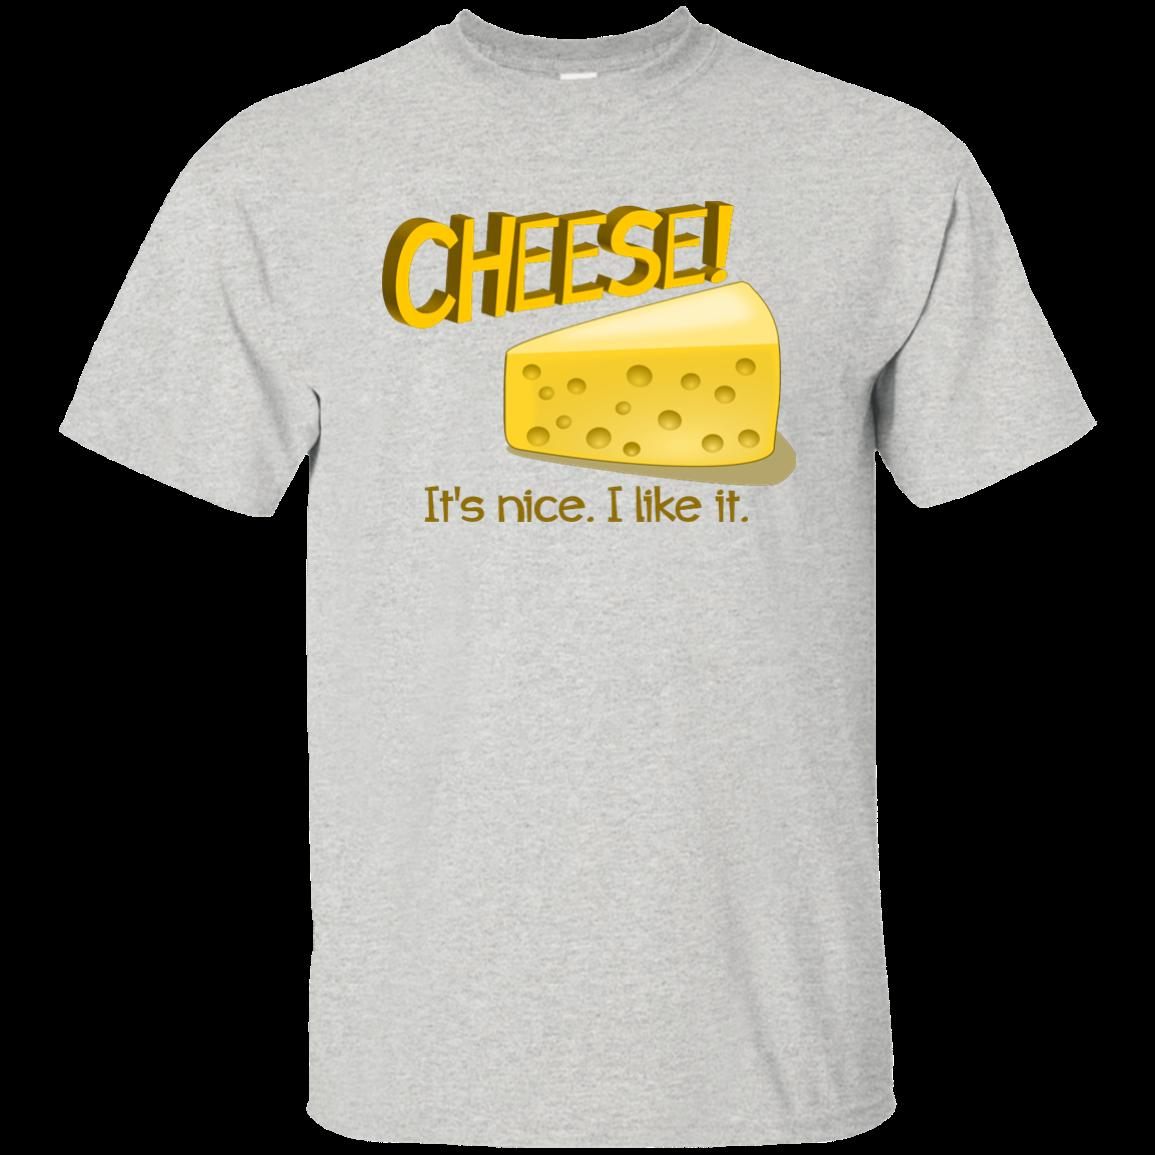 3597d829 Cheese! It's nice, I like it. Fromage Fan Foodie Wine Crackers Funny TShirt  Funny free shipping Unisex Casual